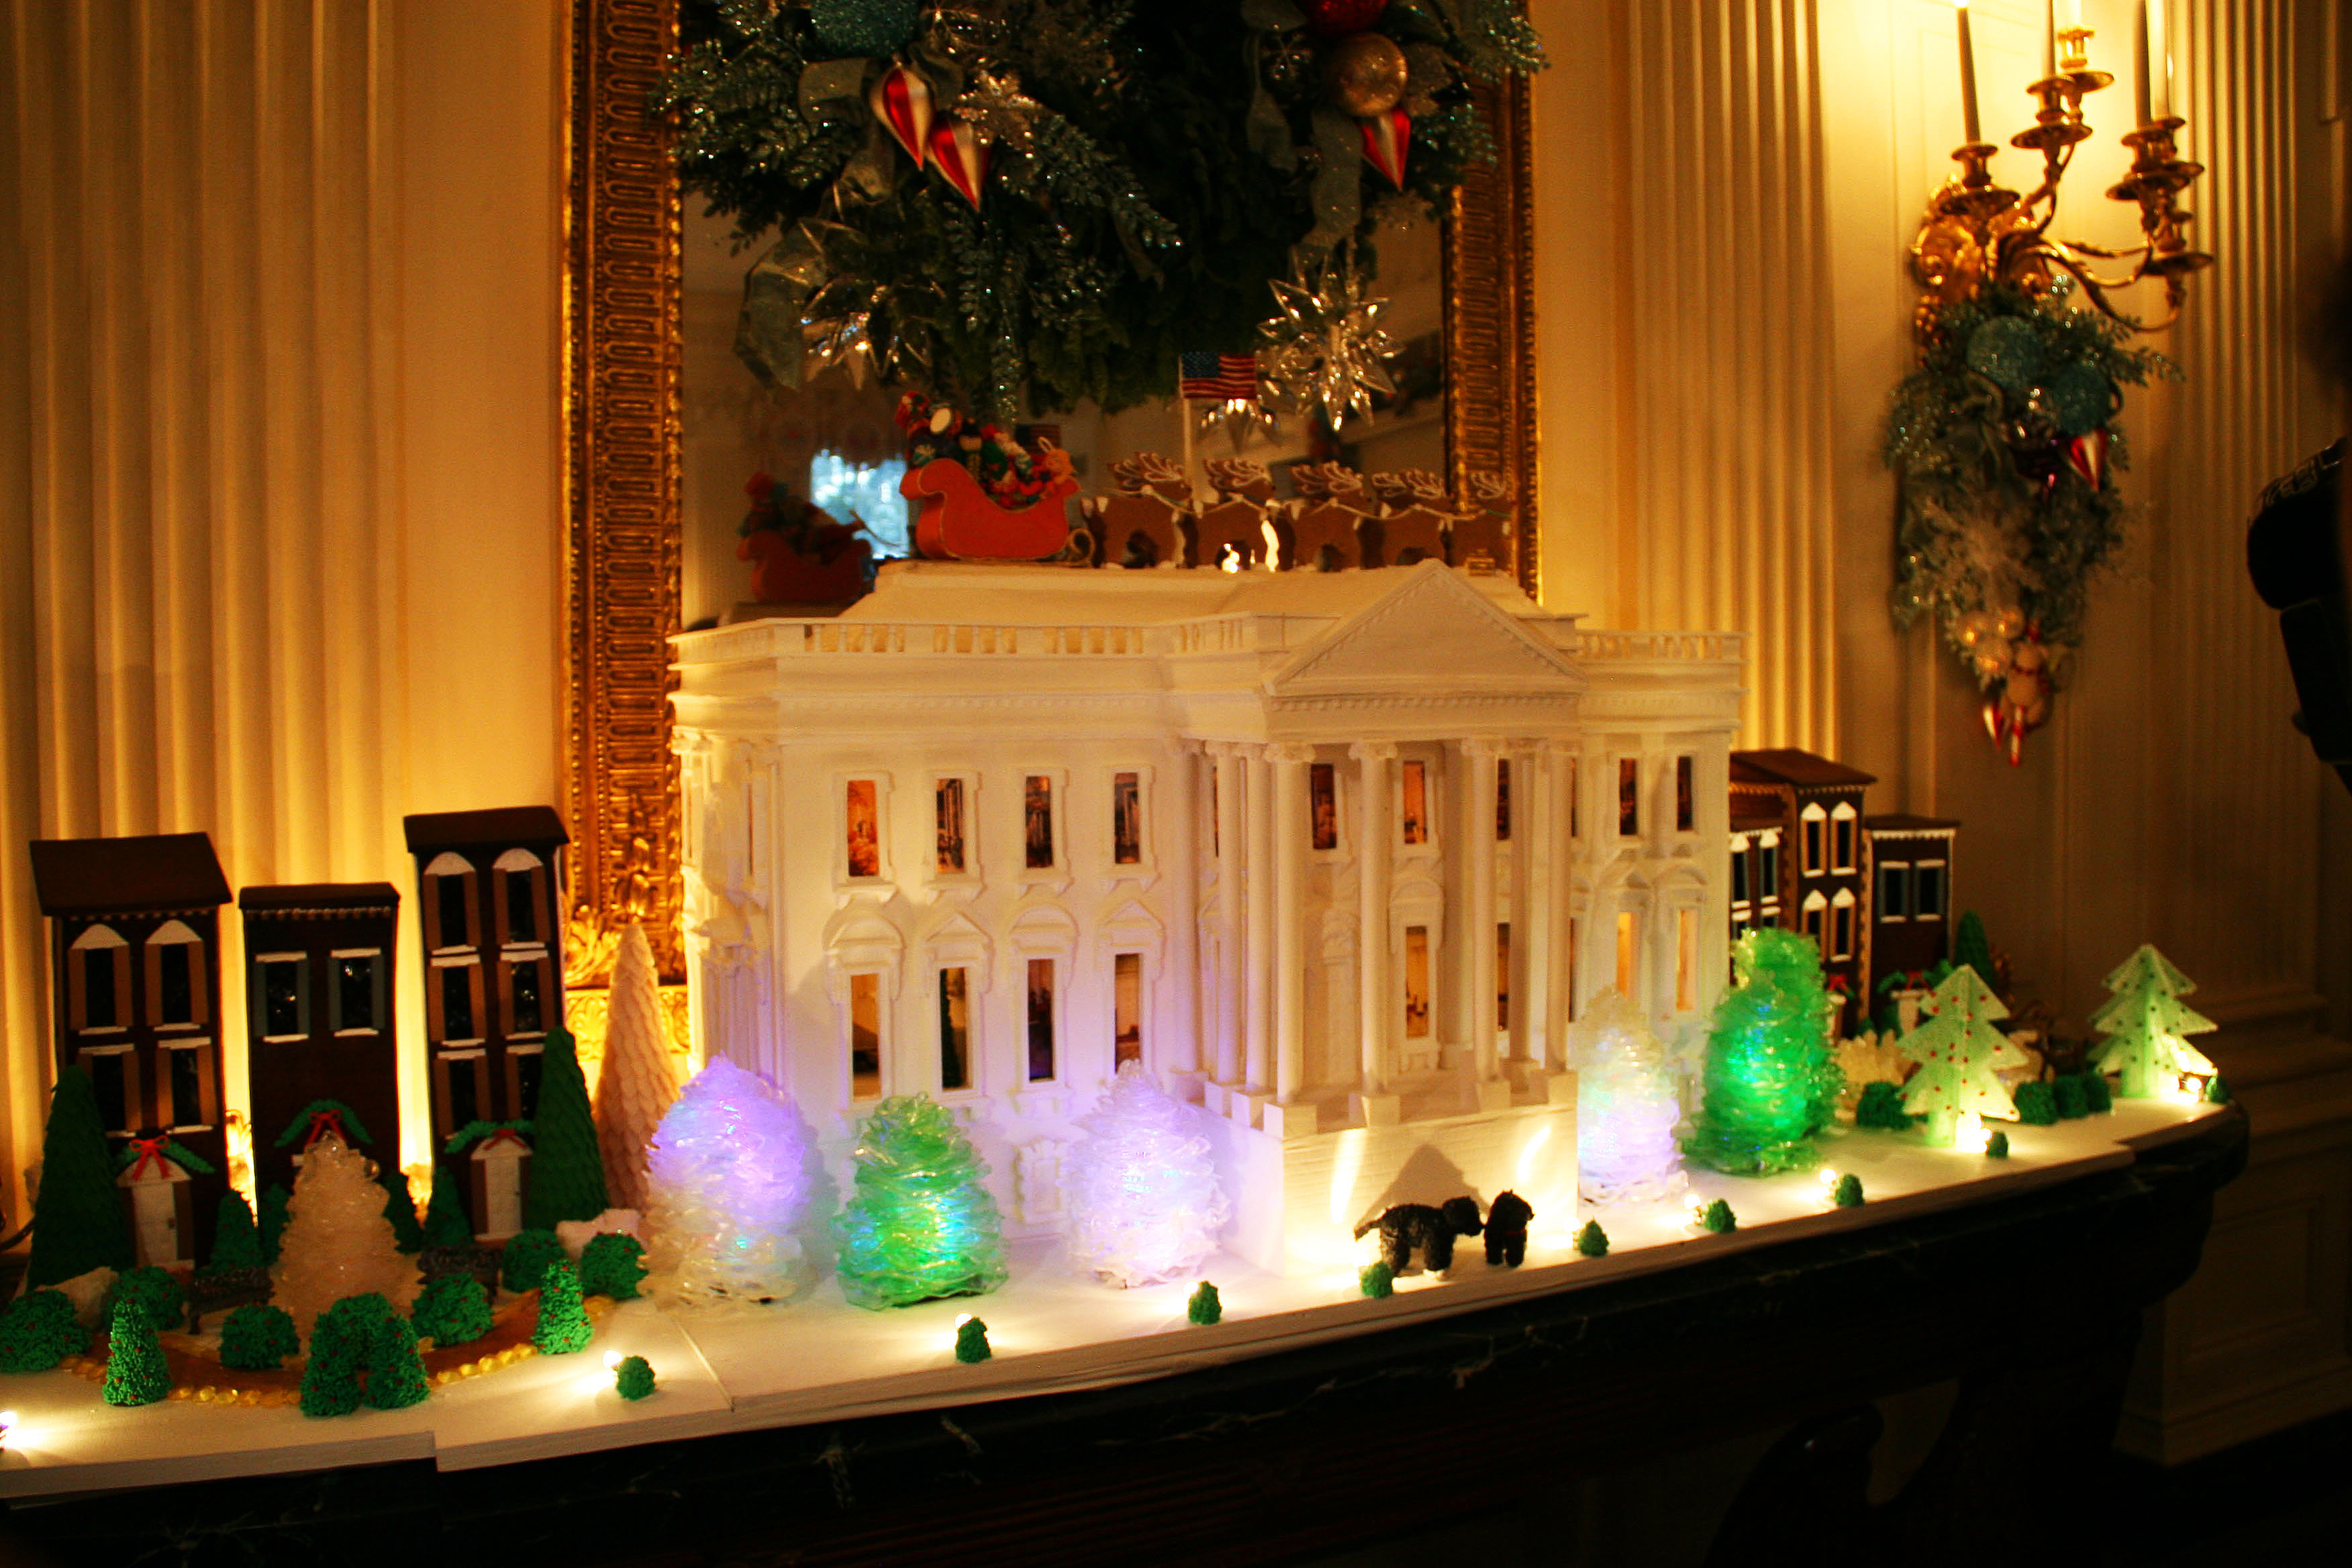 Us department of defense photos photo gallery the white house gingerbread house displayed in the state dining room is made 250 pounds of dzzzfo